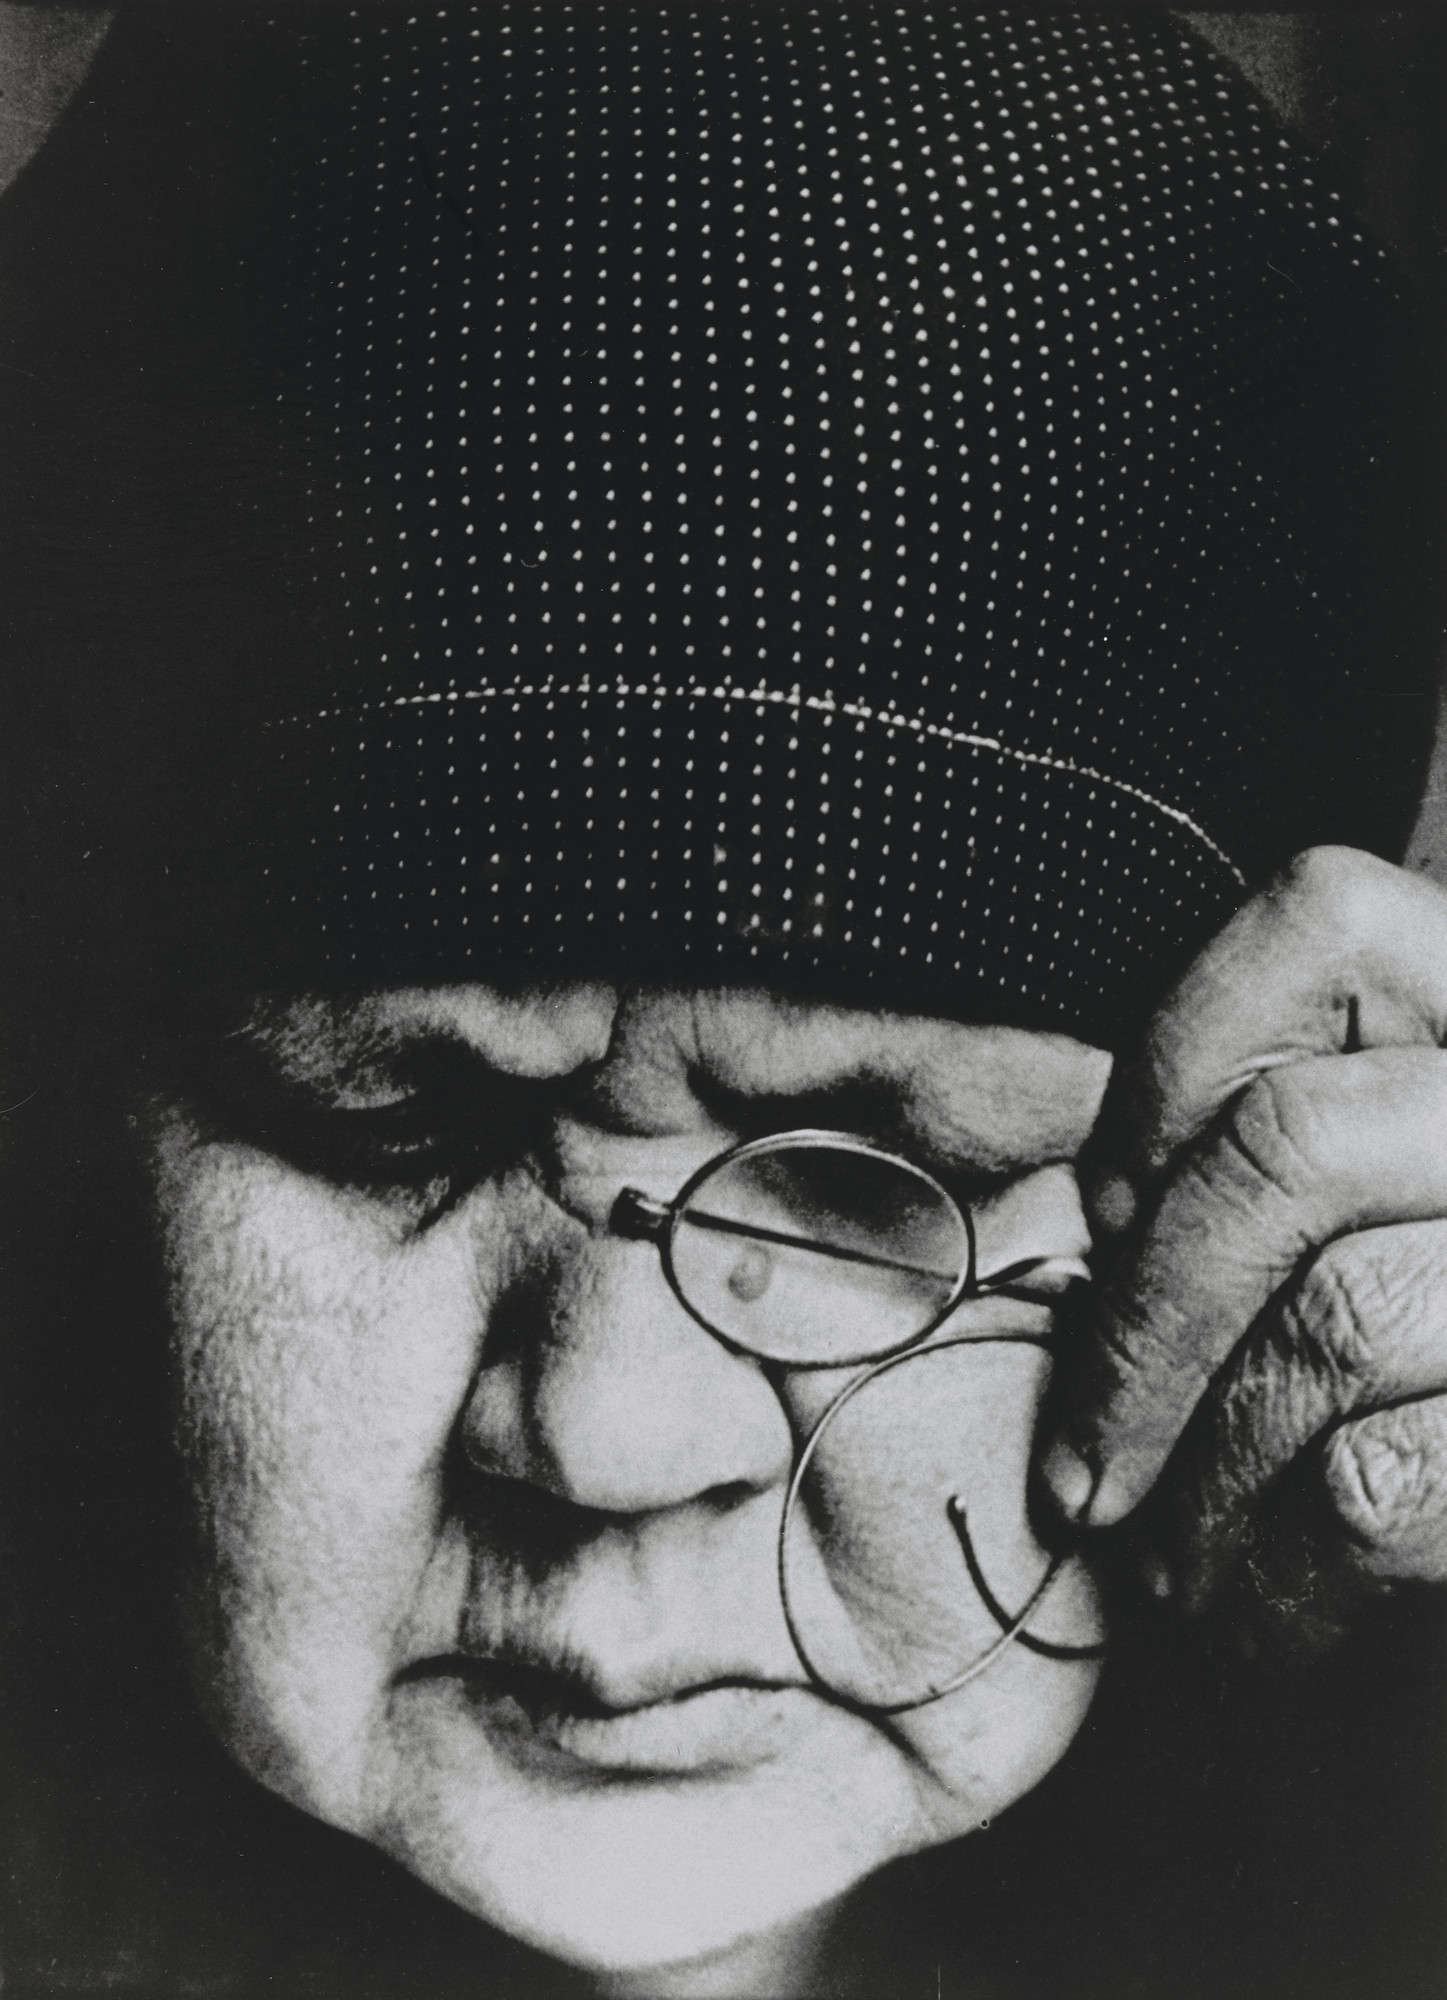 Sherrie Levine. After Rodchenko 1-12. 1987